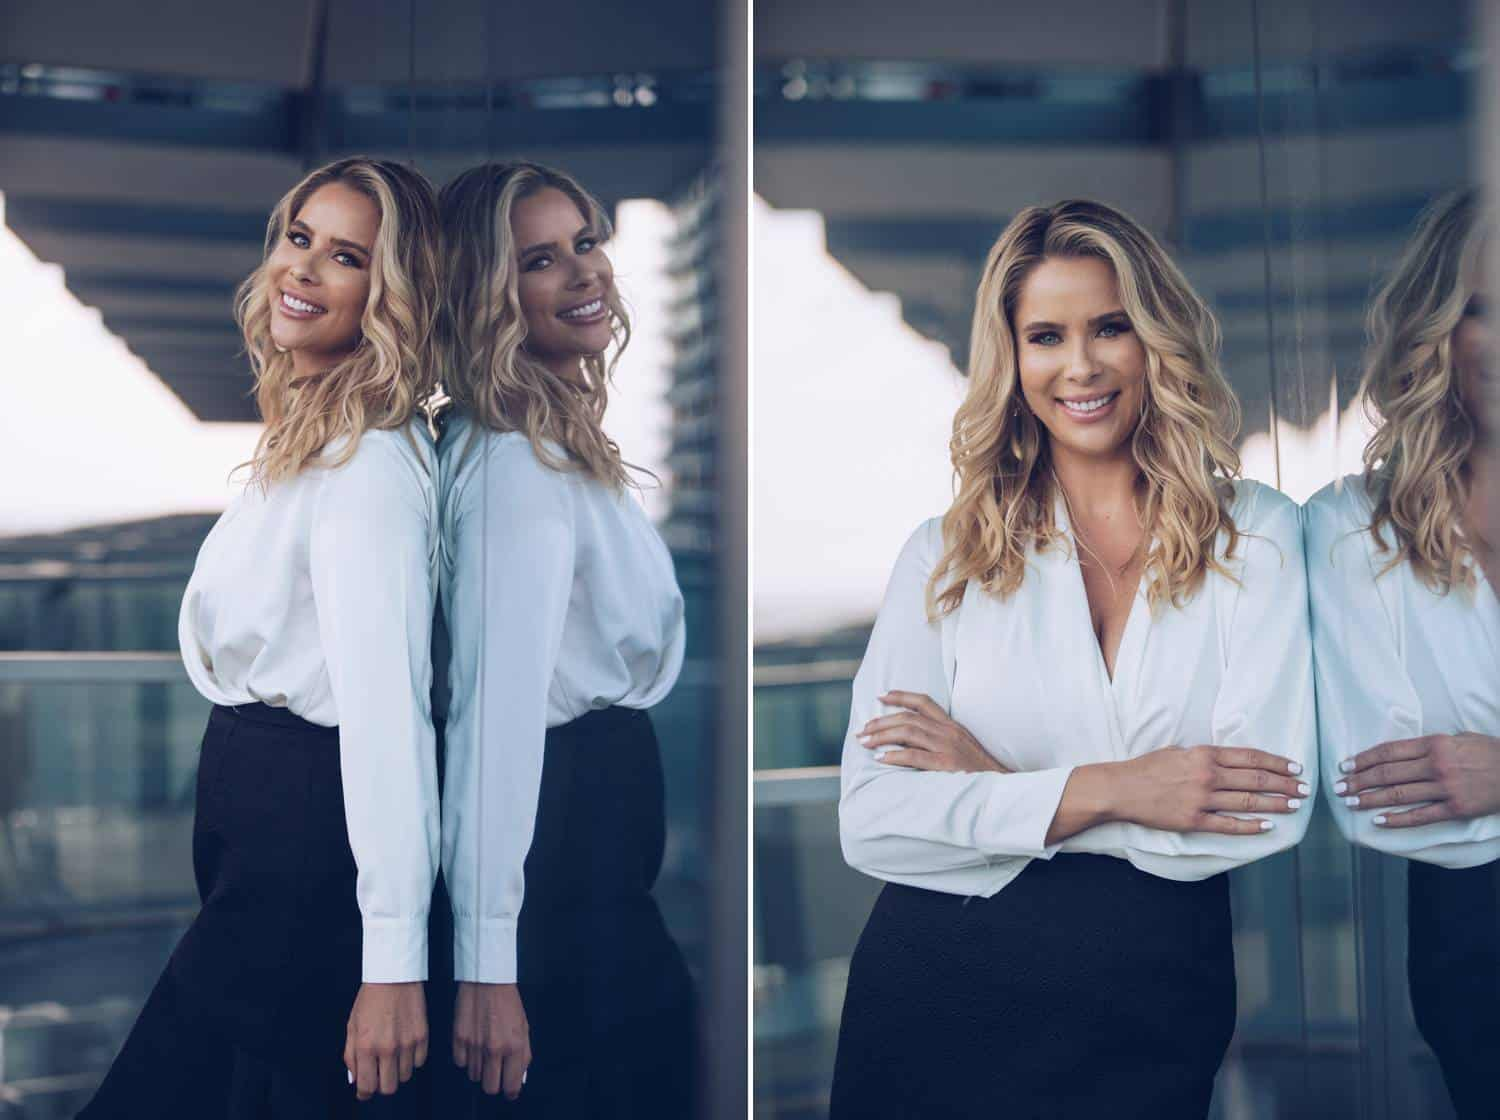 Two portraits by Lauren Alexis Rodriguez are shown side-by-side. On the left, a blonde woman wears a white shirt and black pencil skirt as she leans against a reflective window and looks over her shoulder. In the second photo, the same woman in the same outfit leans her arm against the same window.